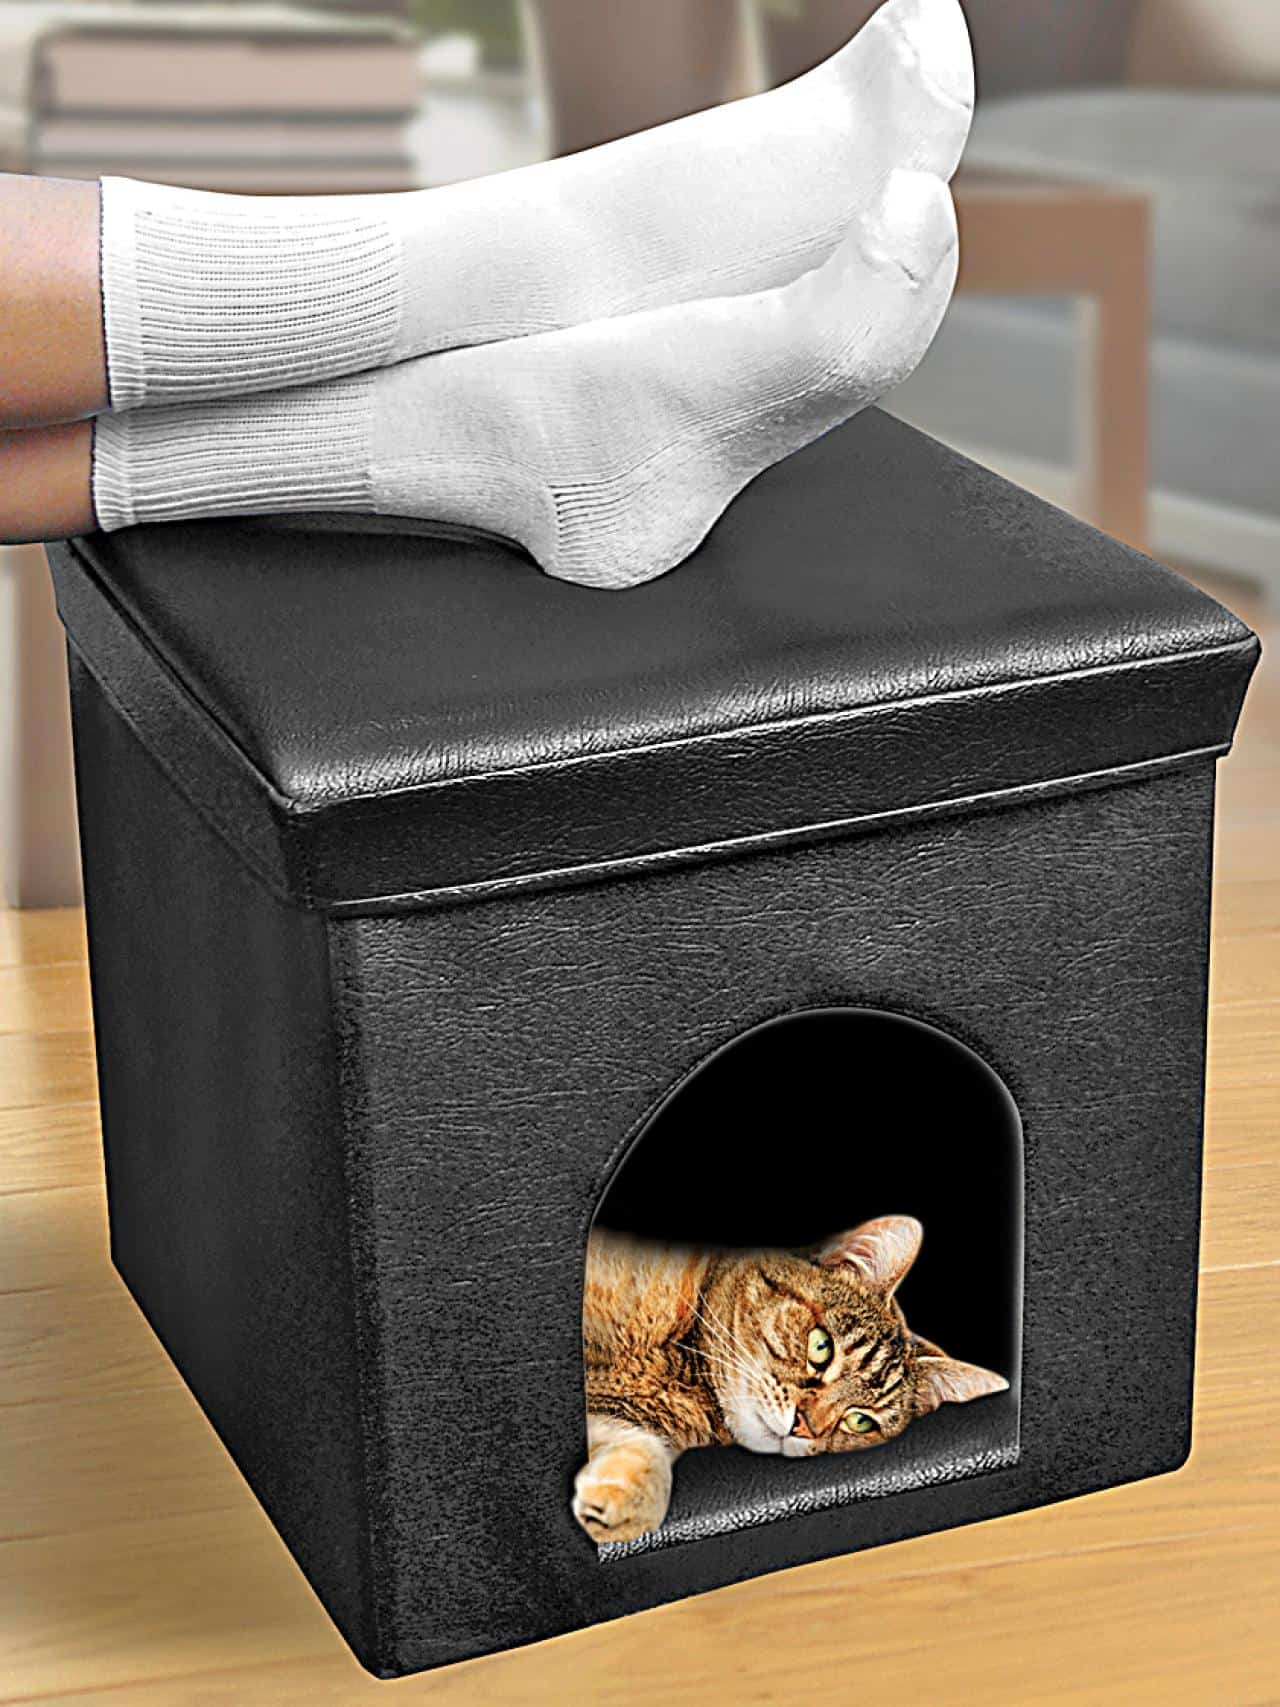 Diy cat house foot stool